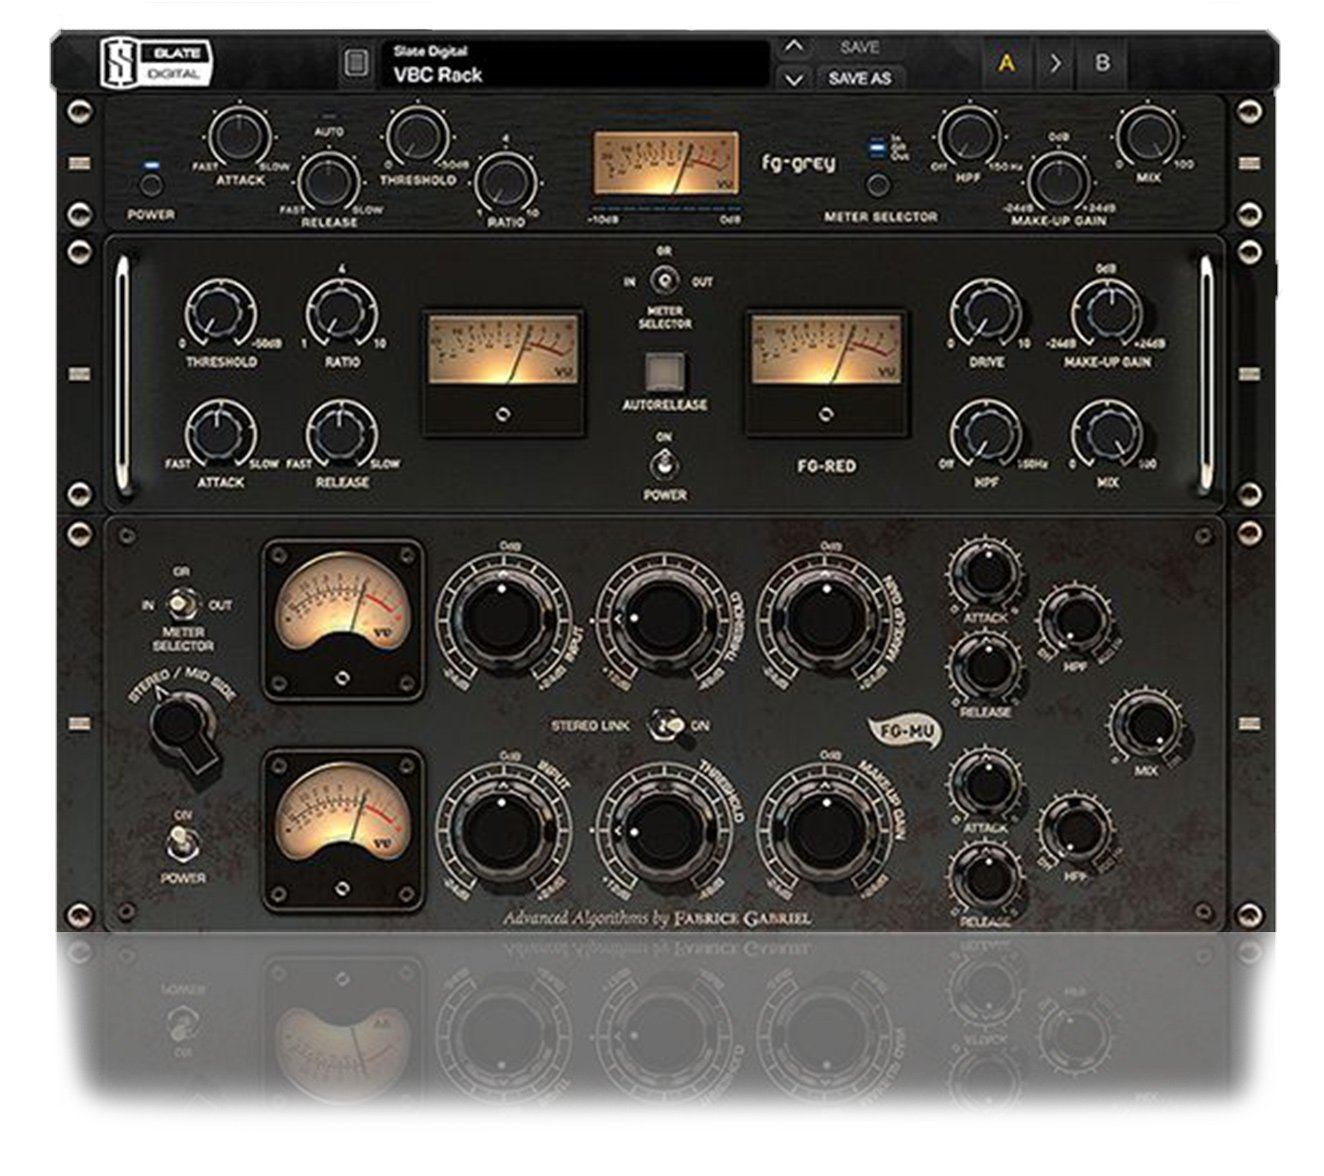 Slate Digital Virtual Buss Compressors (download) Classic Buss Compression  Software Plug-in | Full Compass